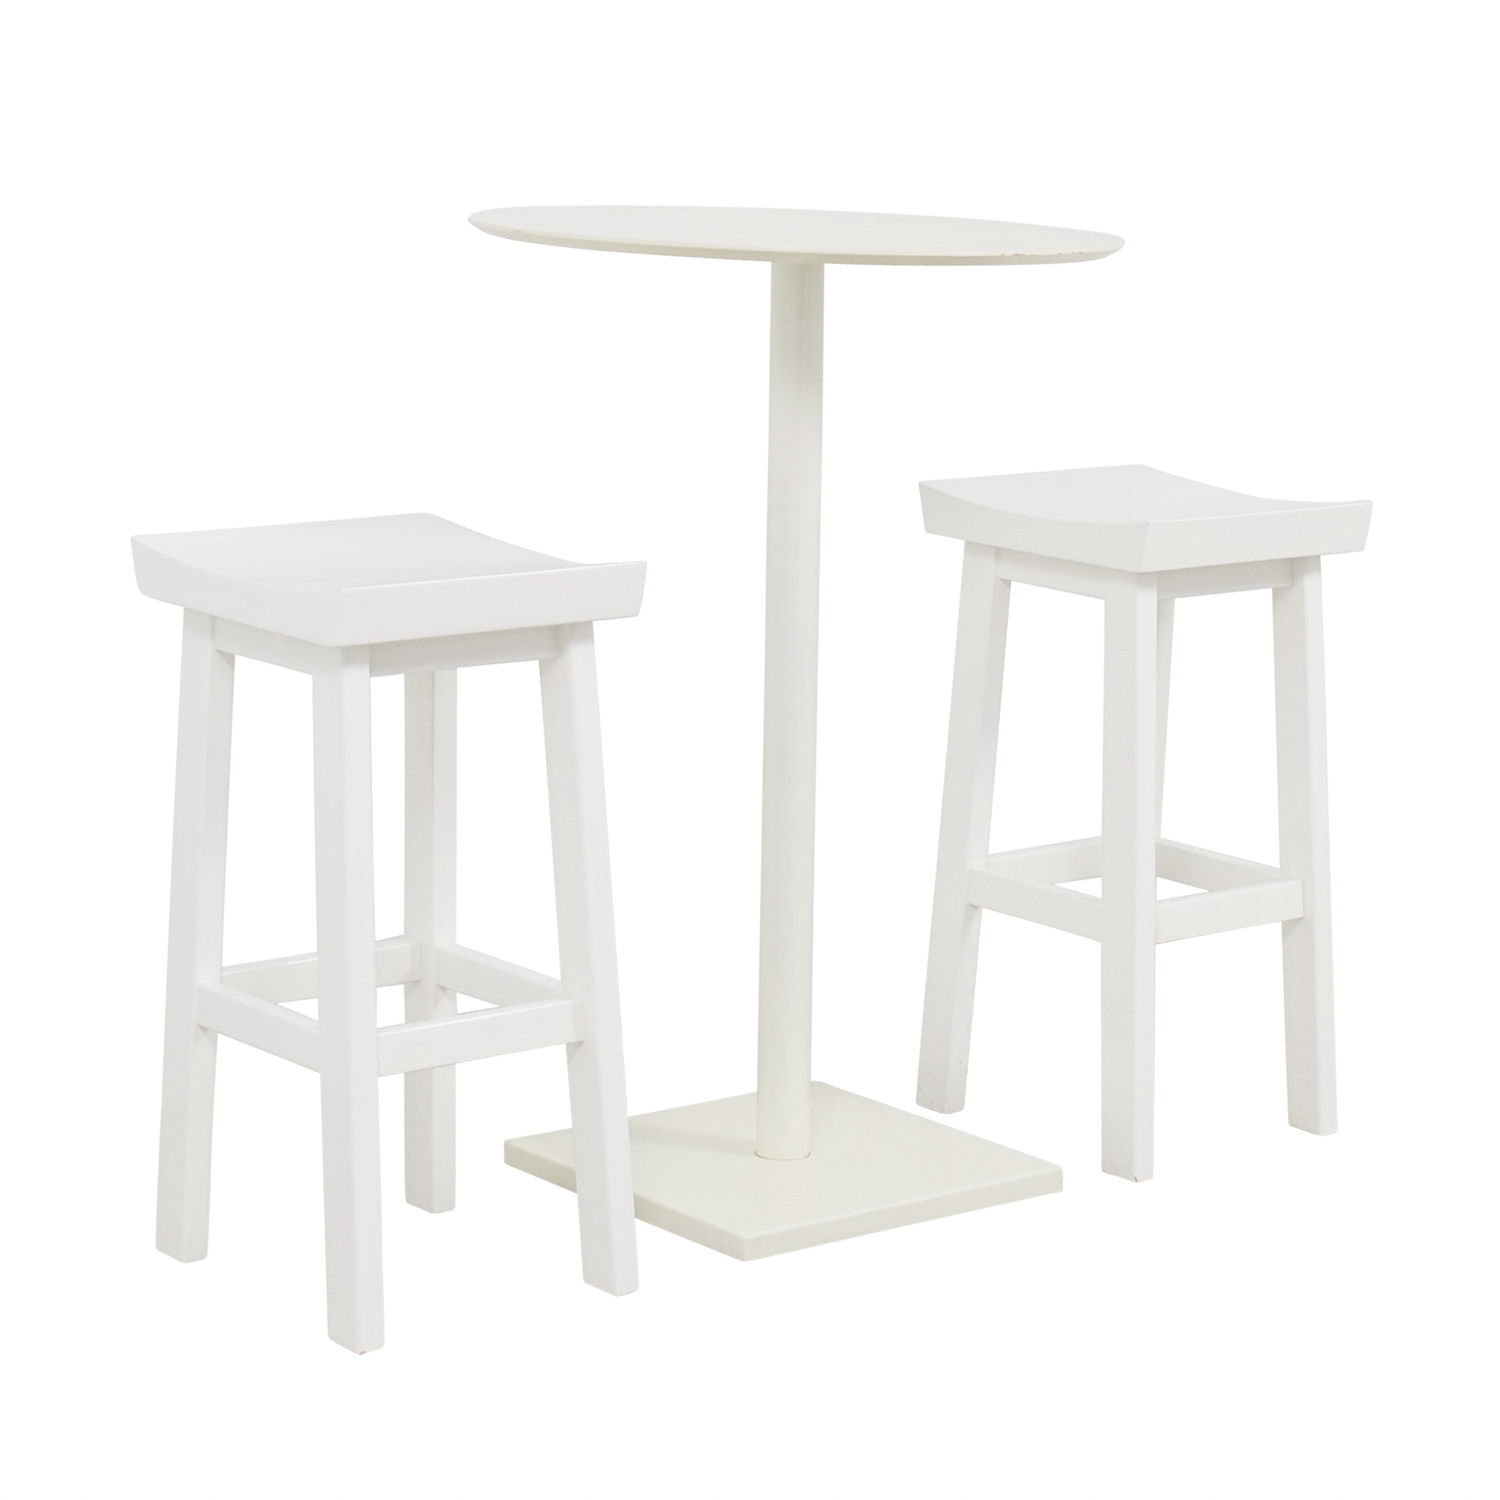 OFF CB CB White HighTop Table And Stools Tables - Cb2 high top table